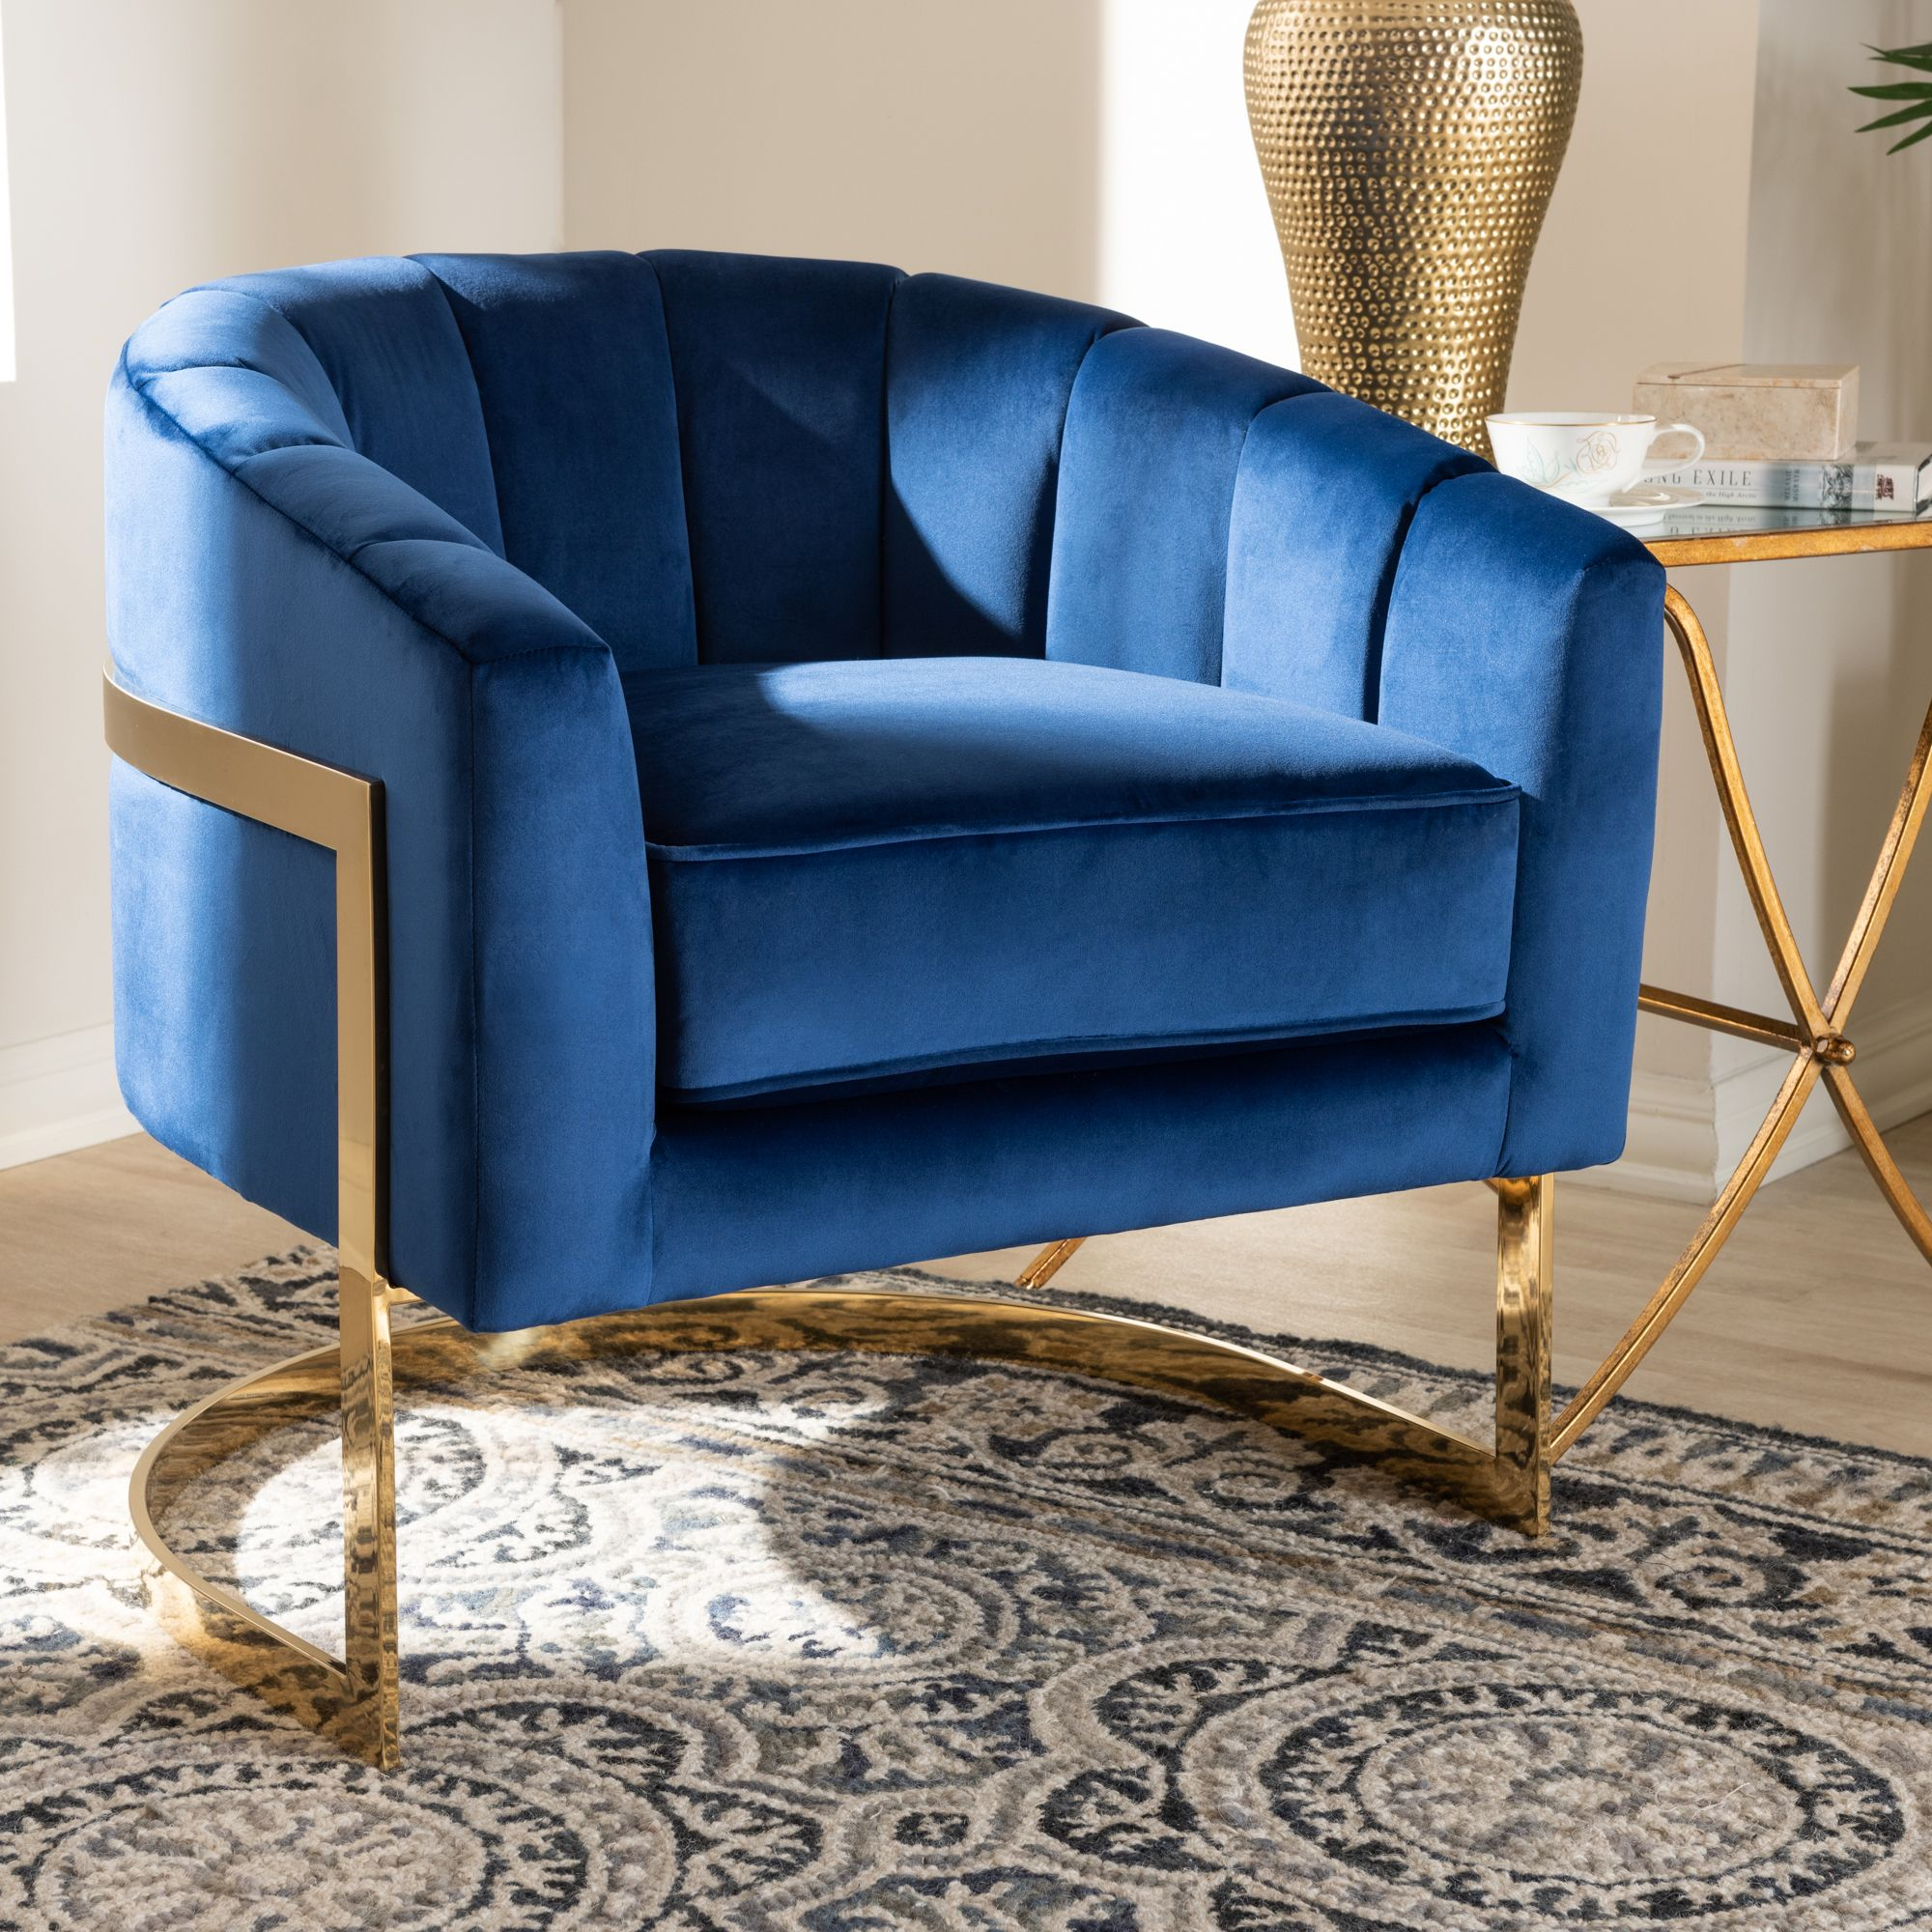 Baxton Studio Tomasso Glam Royal Blue Velvet Fabric Upholstered Gold Finished Lounge Chair Bsotsf7707 Dark Roya White Dining Chairs Velvet Lounge Chair Chair